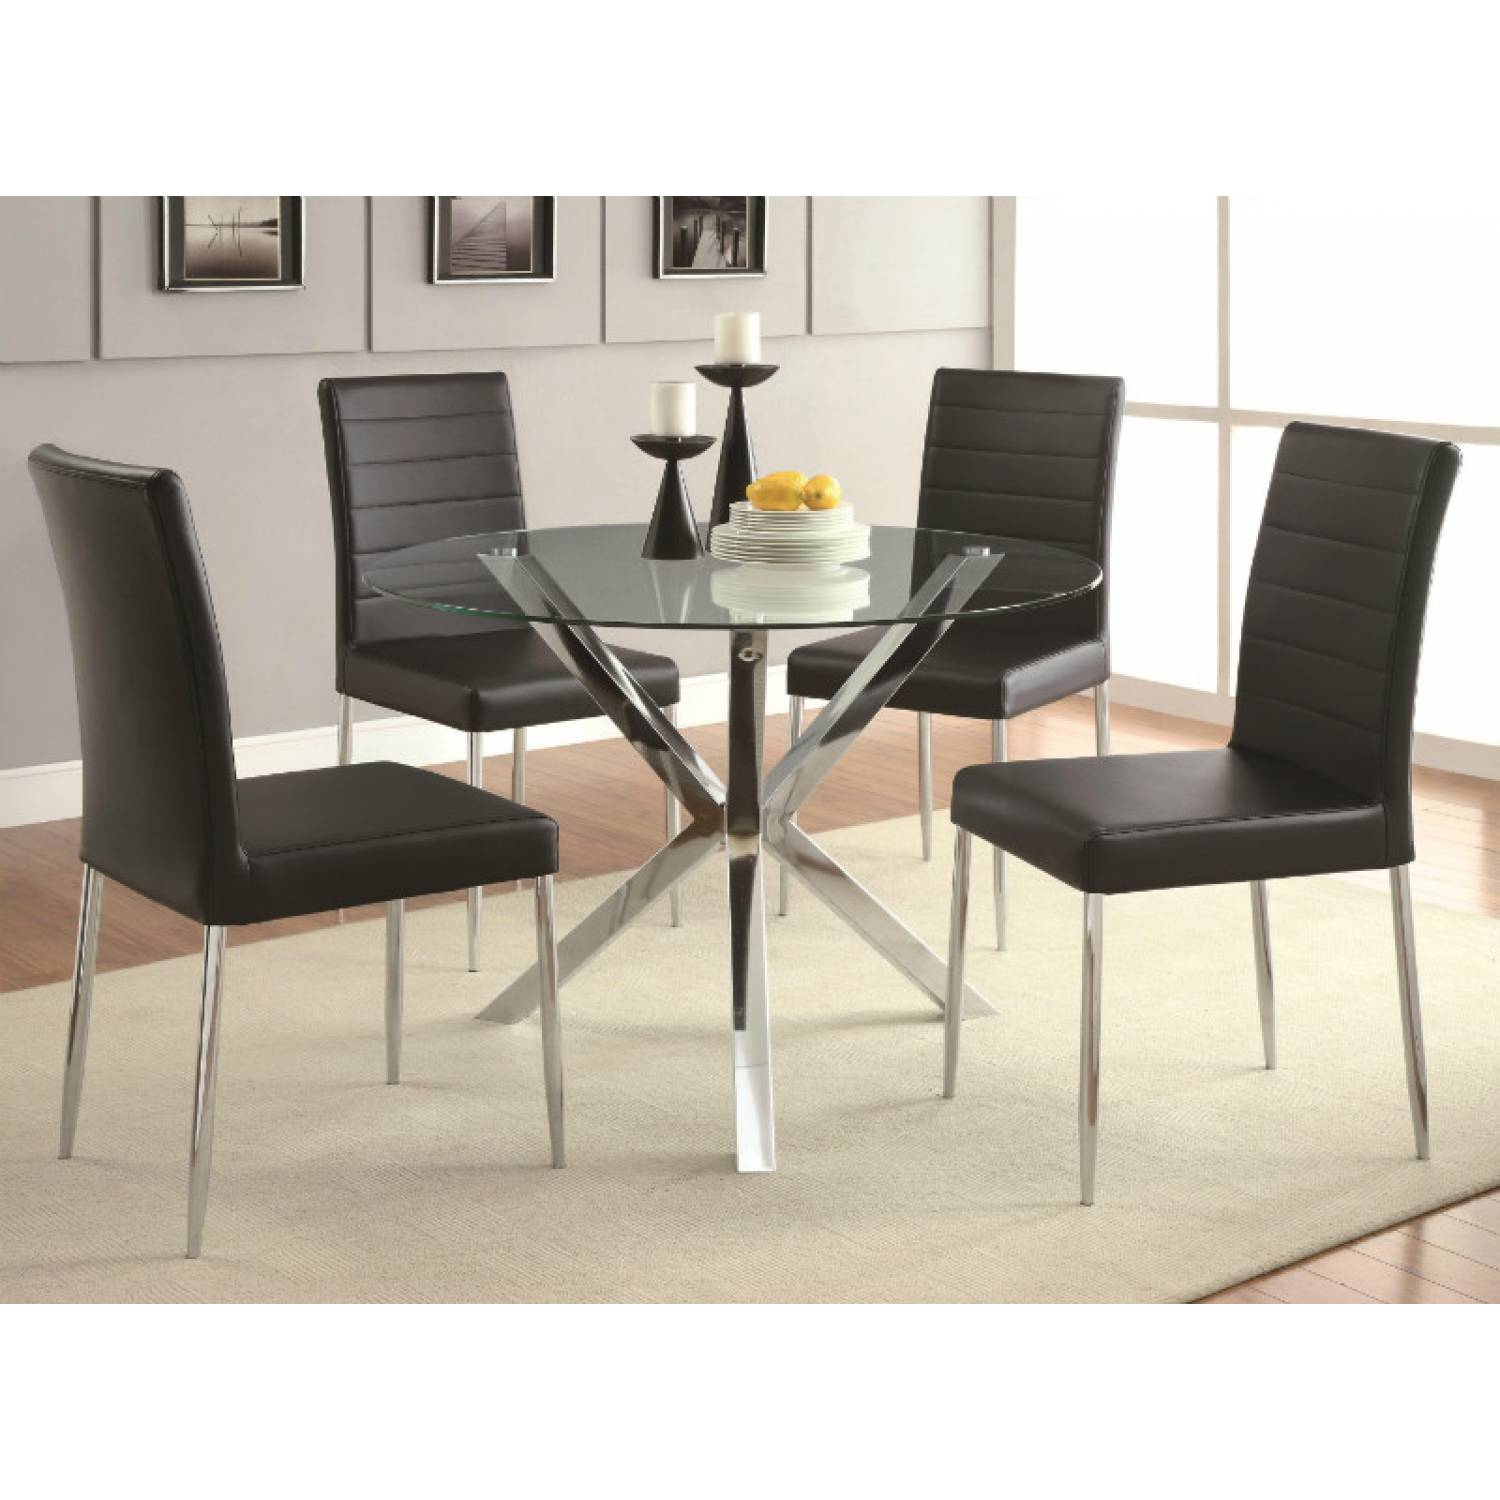 Glass Kitchen Sets: Vance Contemporary 5-Piece Glass Top Table And Chair Set